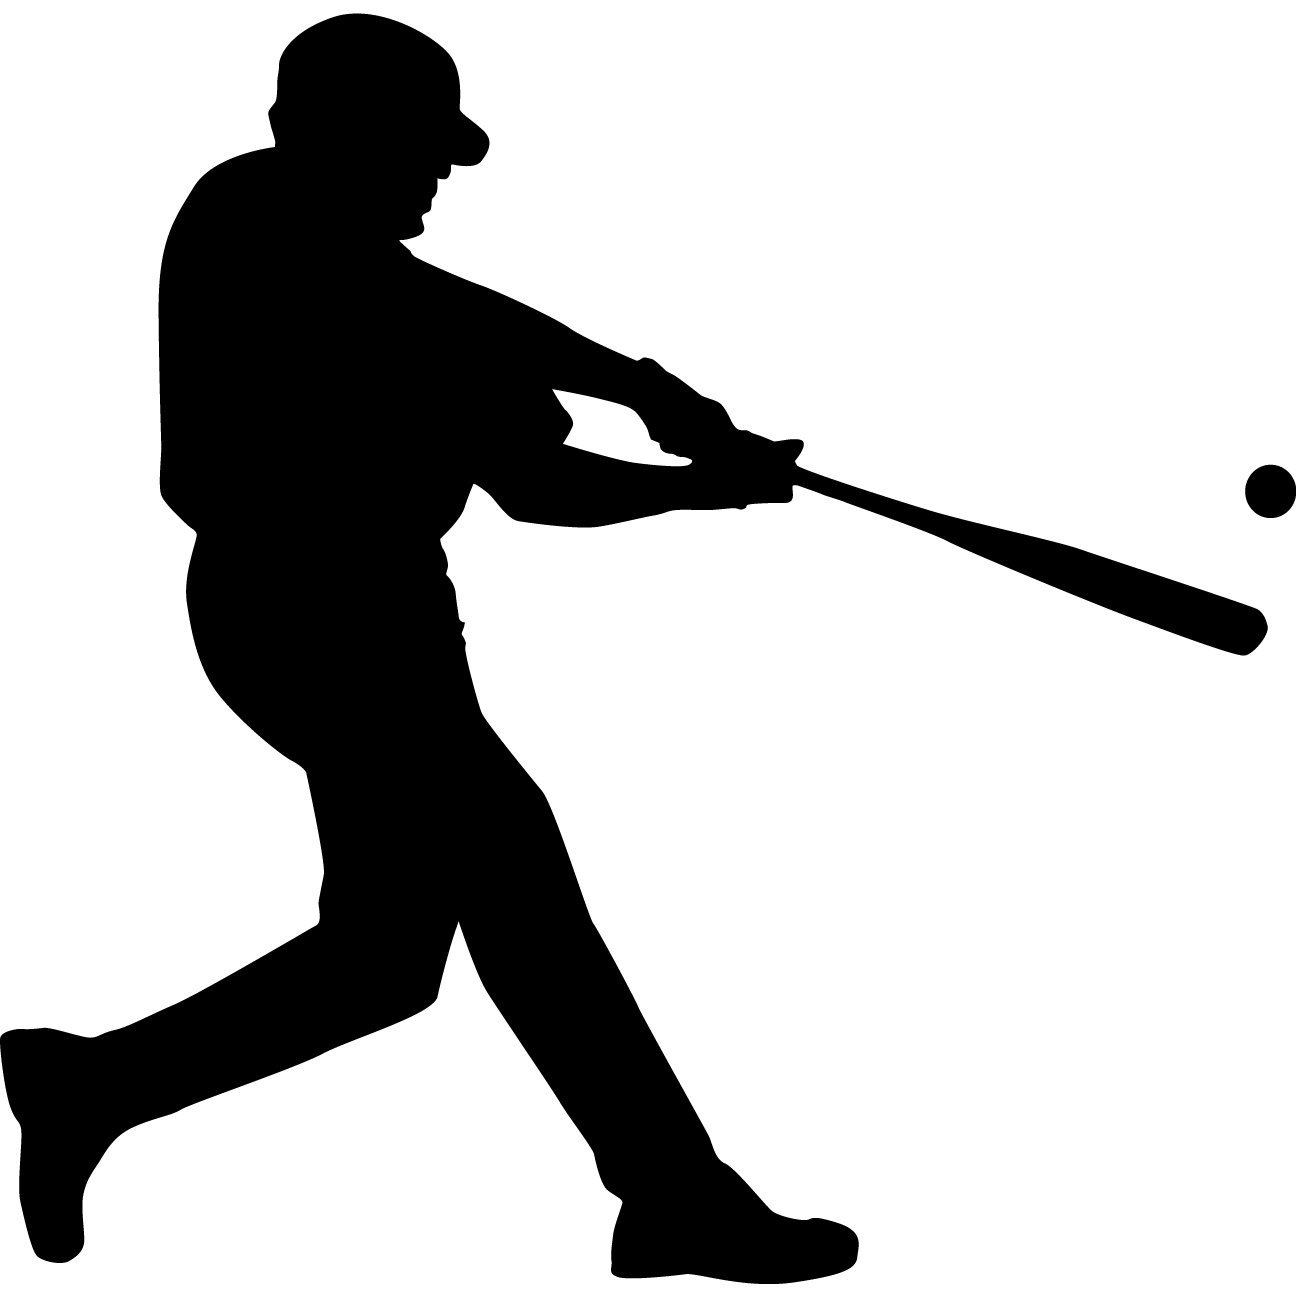 1296x1296 Baseball Player Clipart Silhouette